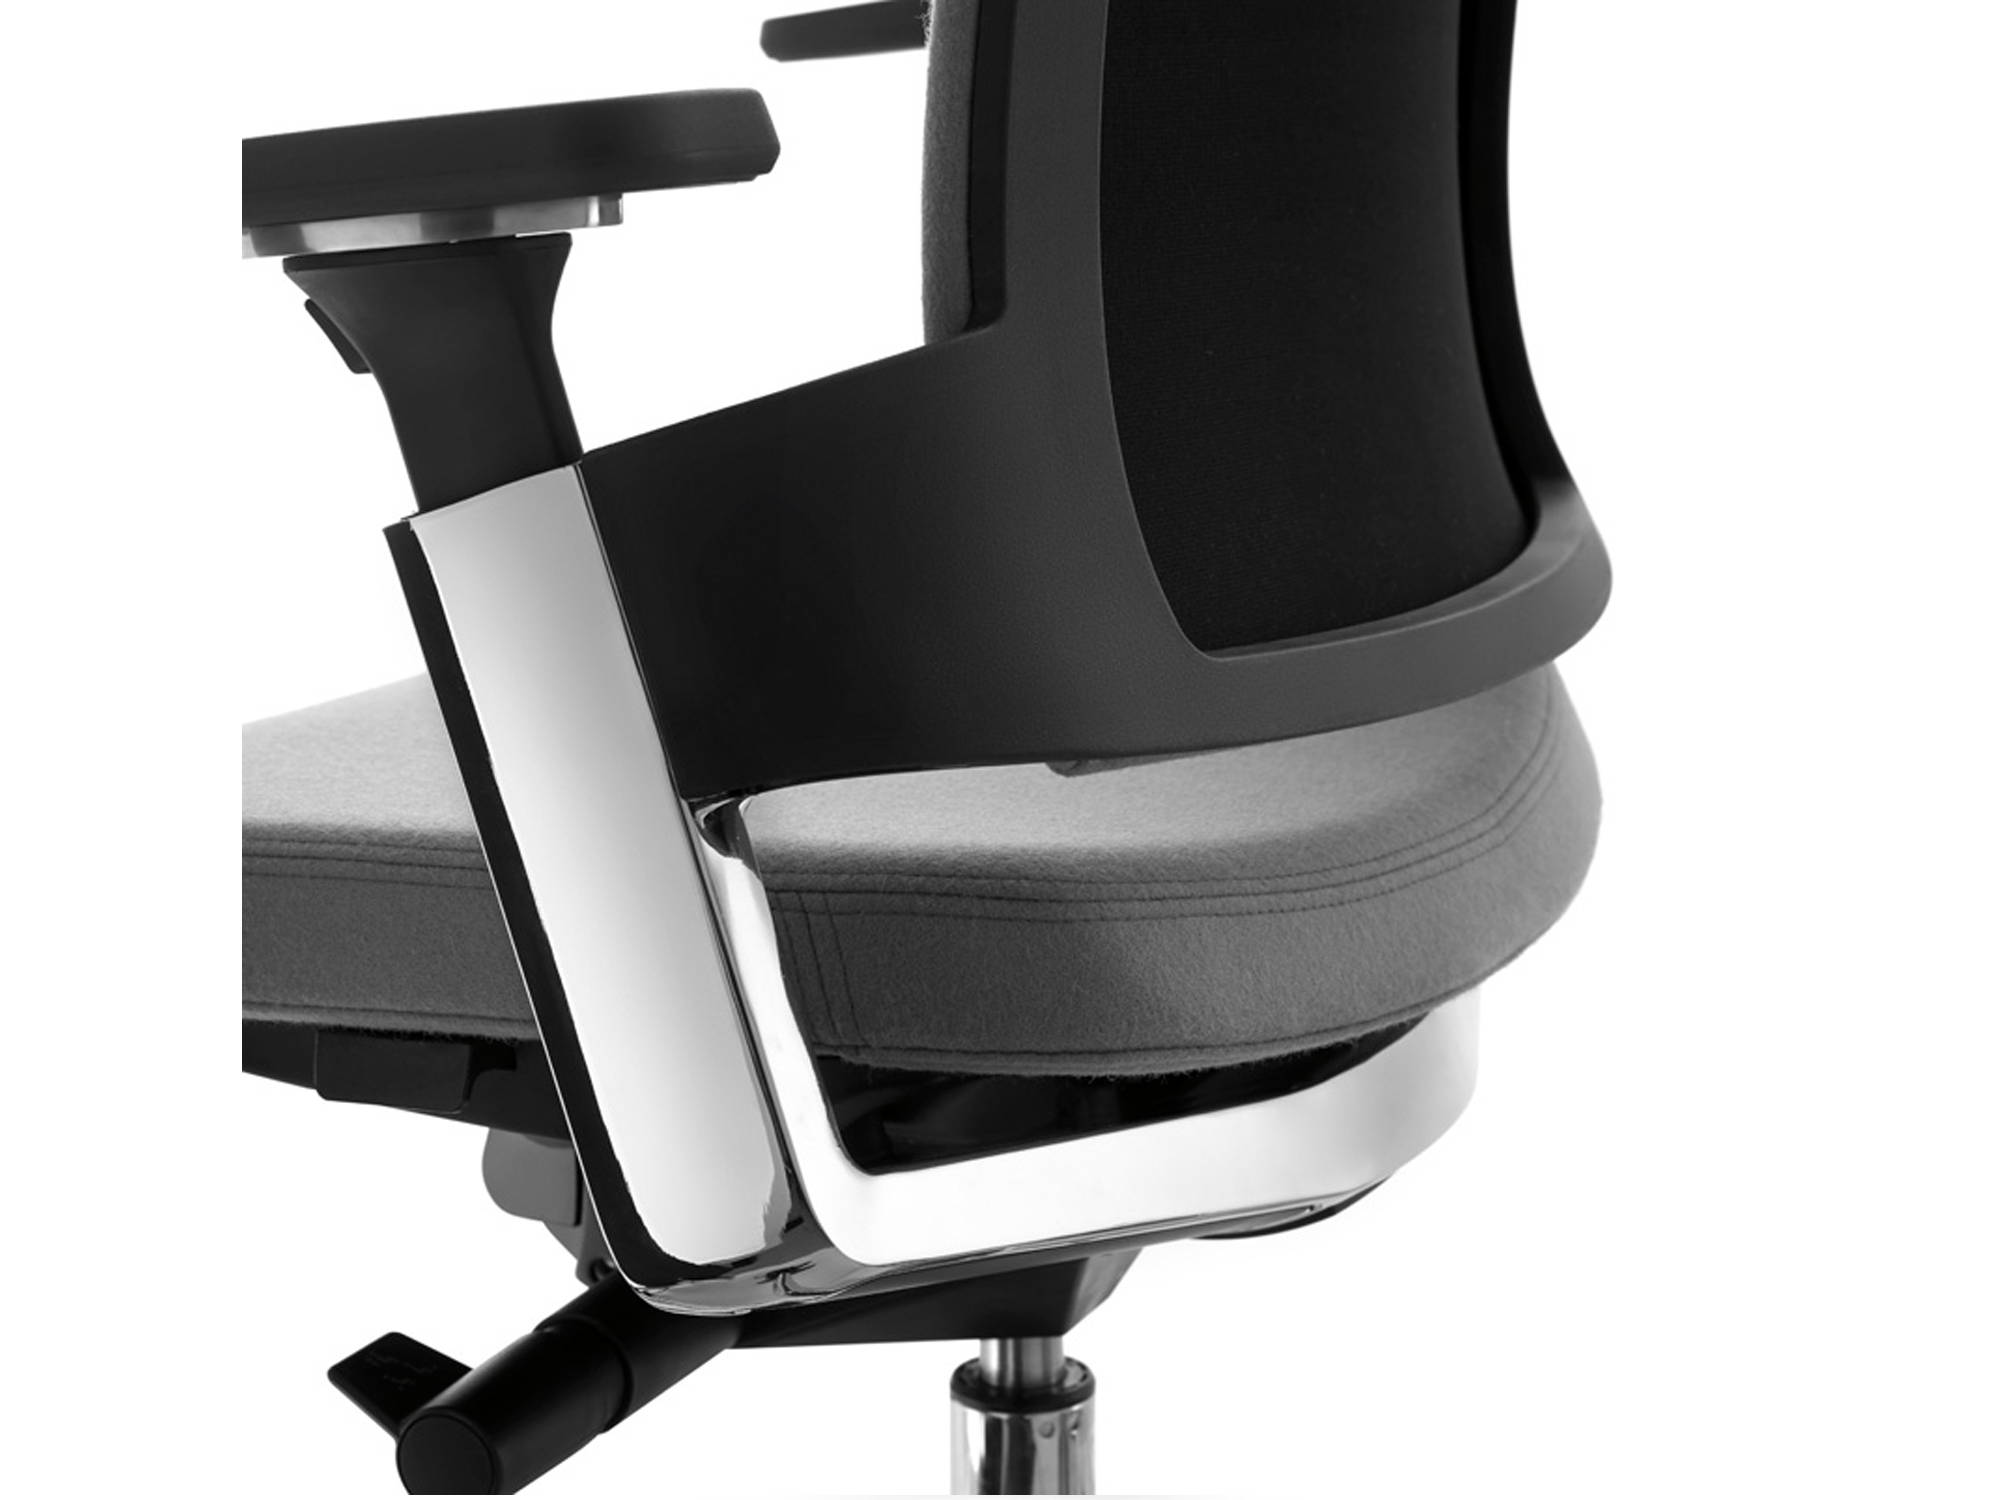 Ergonomic_chair_18.jpg